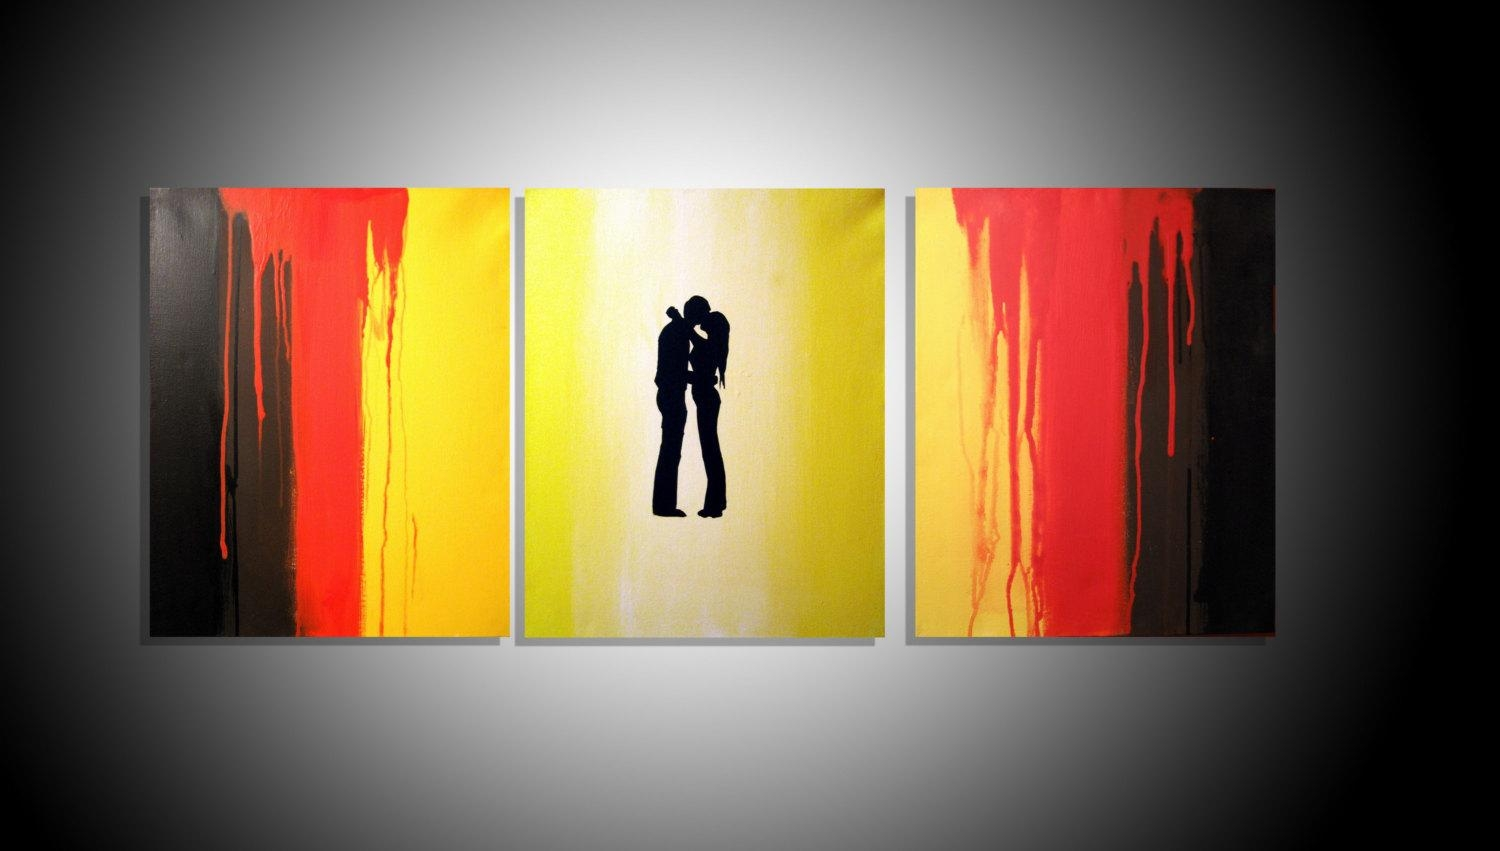 Large Wall Romantic Romance Art Triptych 3 Panel Wall Art Regarding Large Triptych Wall Art (Image 7 of 20)